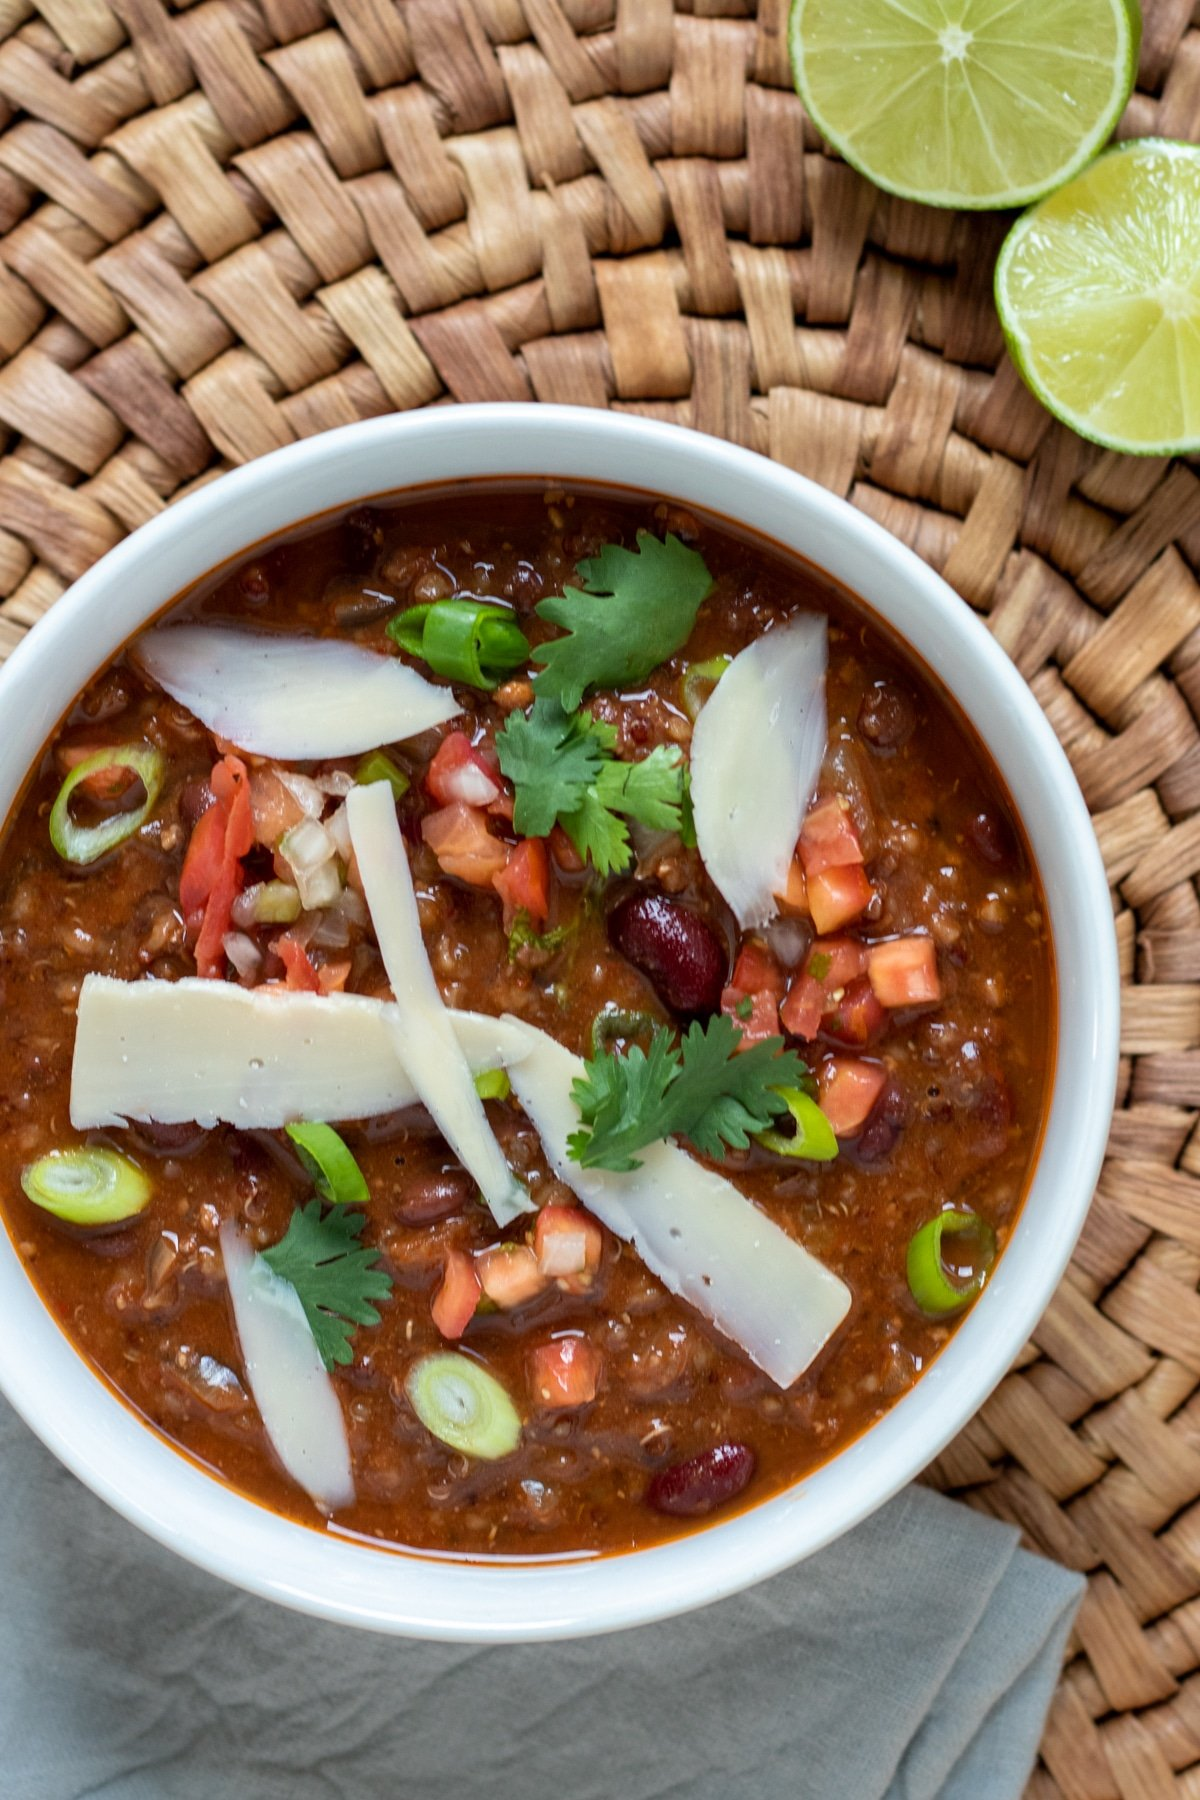 vegan chili in a white bowl with toppings